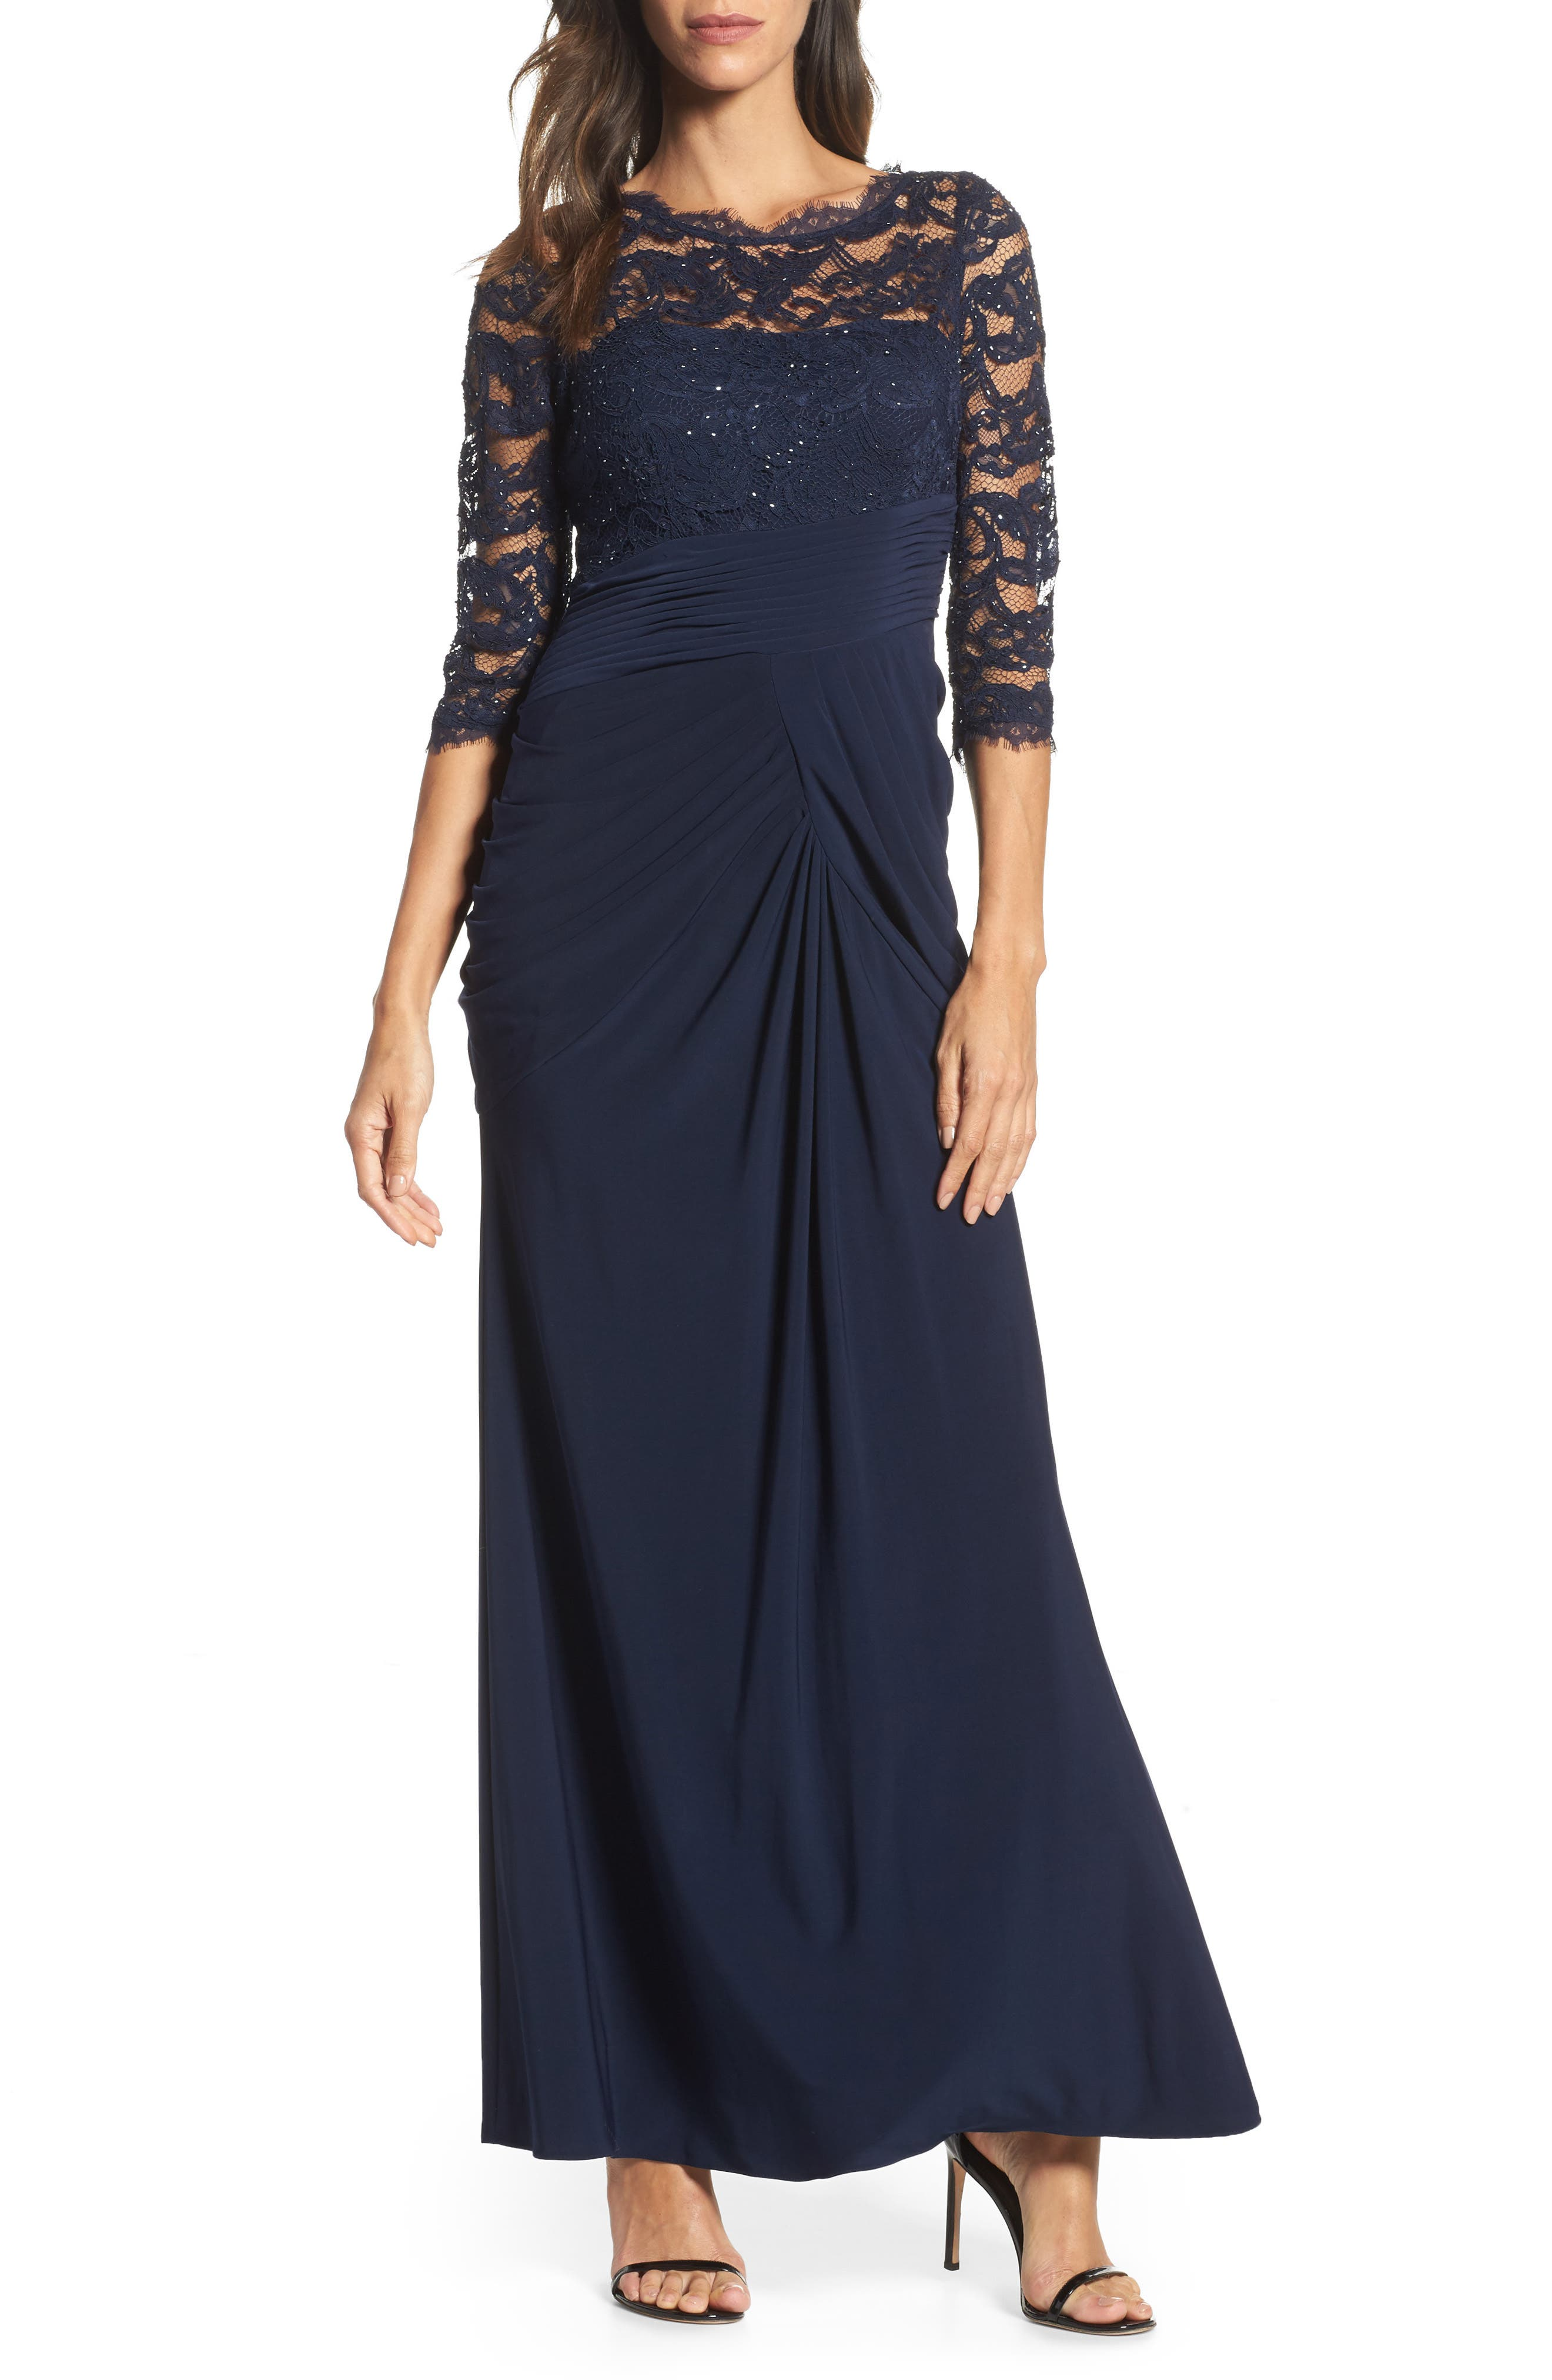 Lace adrianna papell dress